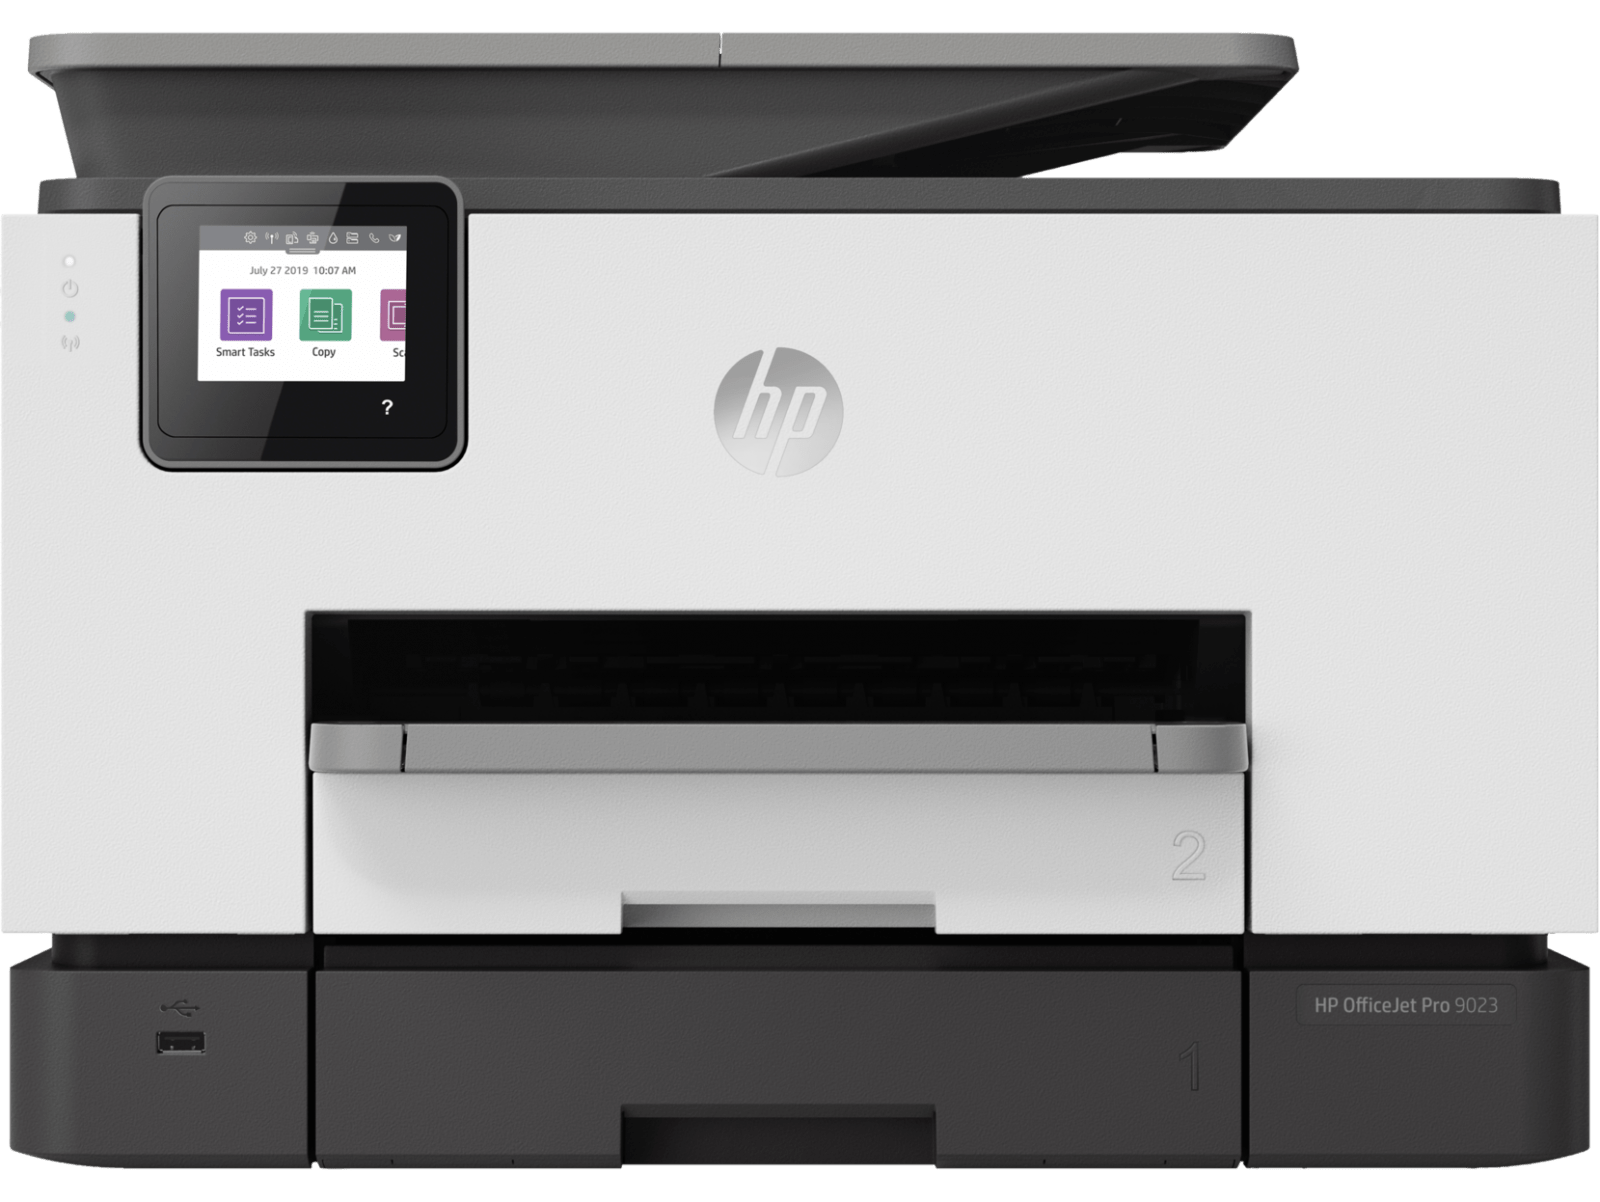 HP OfficeJet Pro 9035 All-in-One Printer